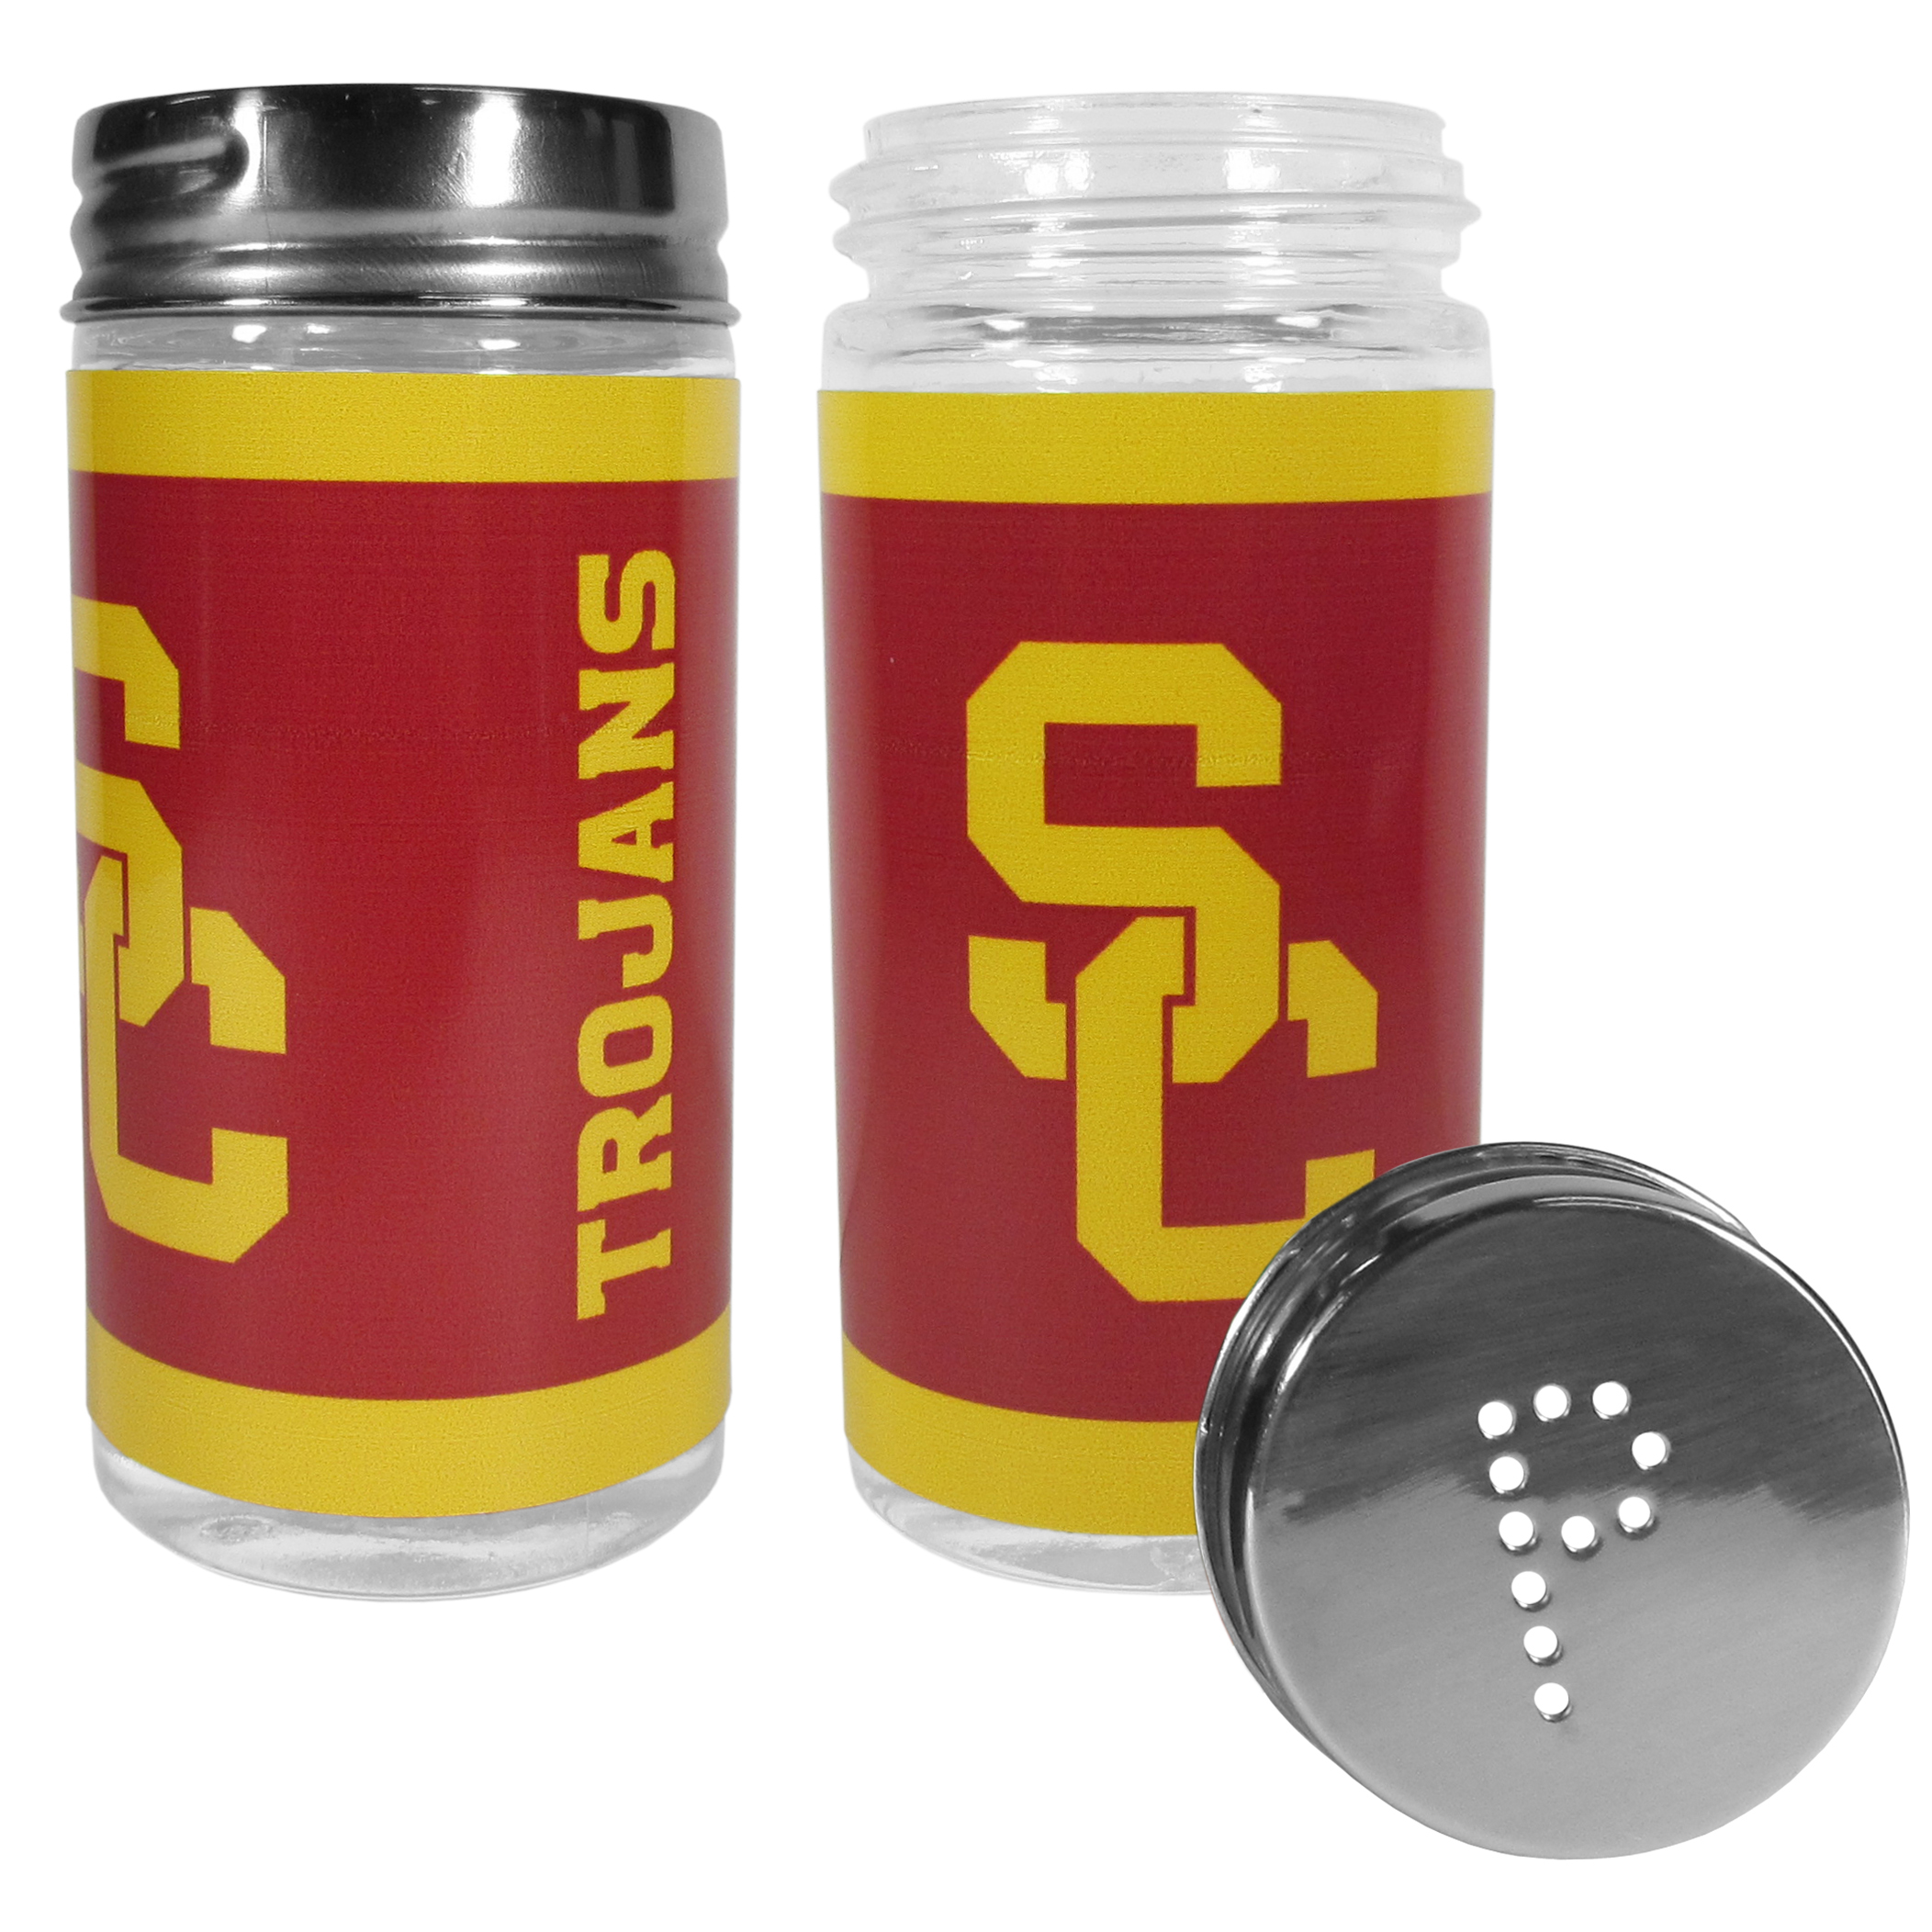 USC Trojans Tailgater Salt & Pepper Shakers - No tailgate party is complete without your USC Trojans salt & pepper shakers featuring bright team graphics. The glass shakers are 3.75 inches tall and the screw top lids have holes that spell out P and S. These team shakers are a great grill accessory whether you are barbecuing on the patio, picnicing or having a game day party.